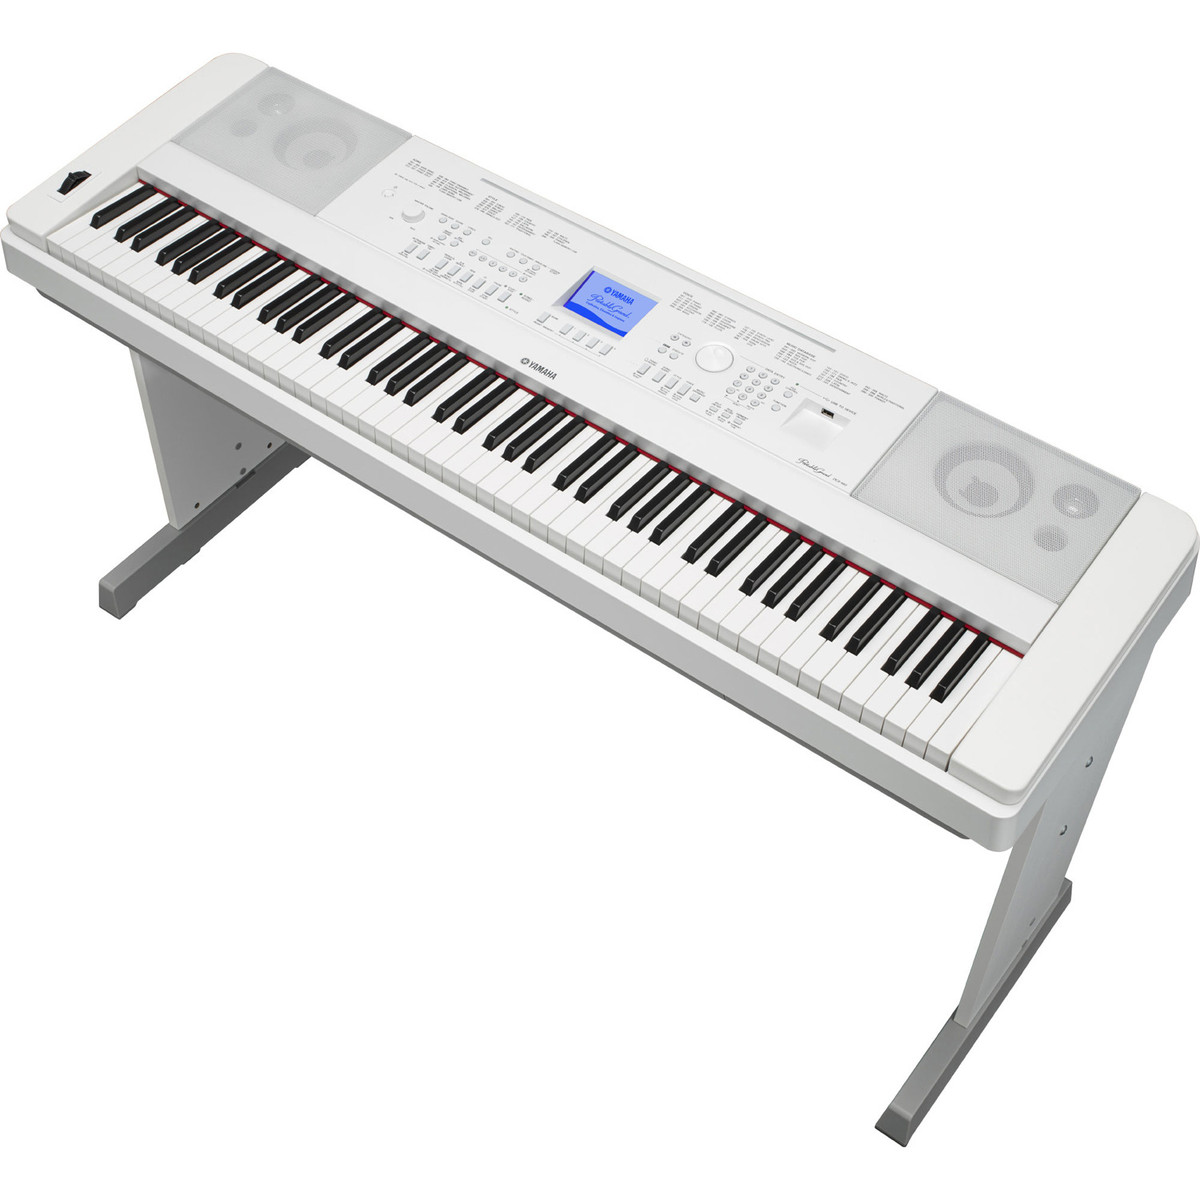 Yamaha dgx660 digital piano with stand white at for White yamaha piano